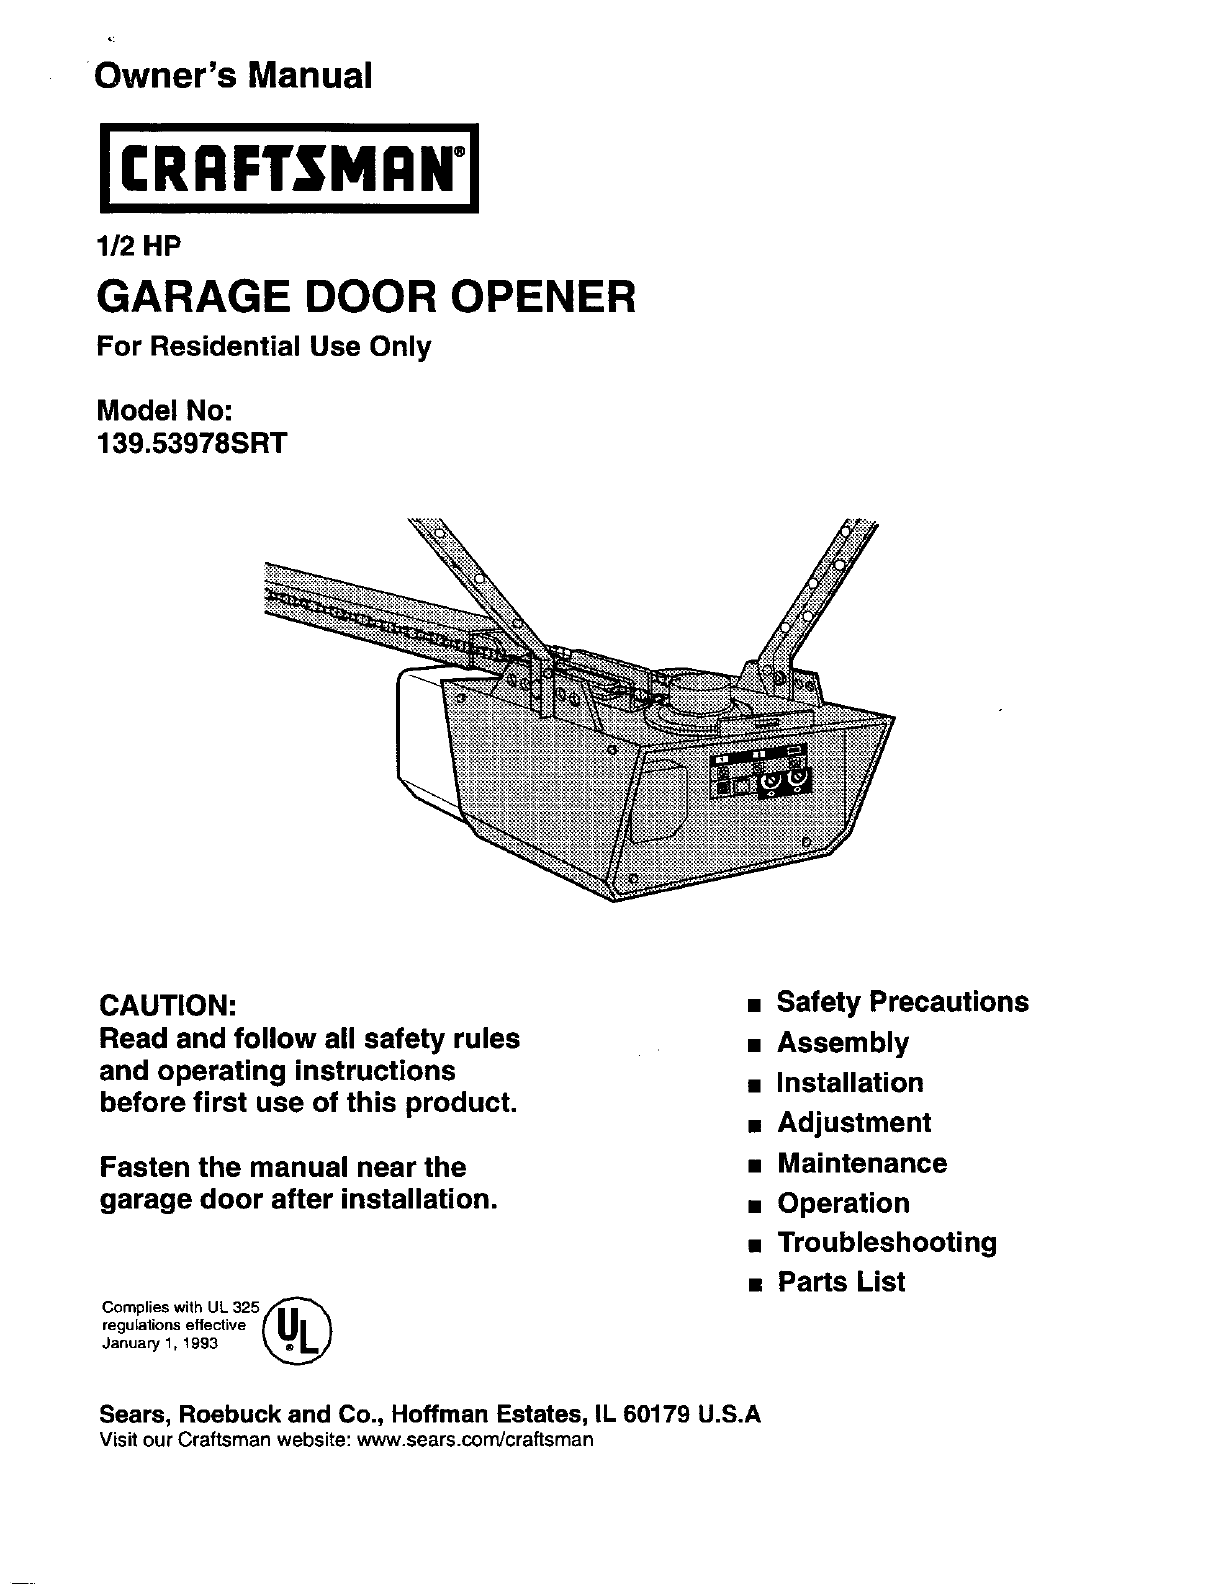 craftsman garage door opener 139 53978srt user guide craftsman garage door opener 139 53978srt user guide manualsonline com